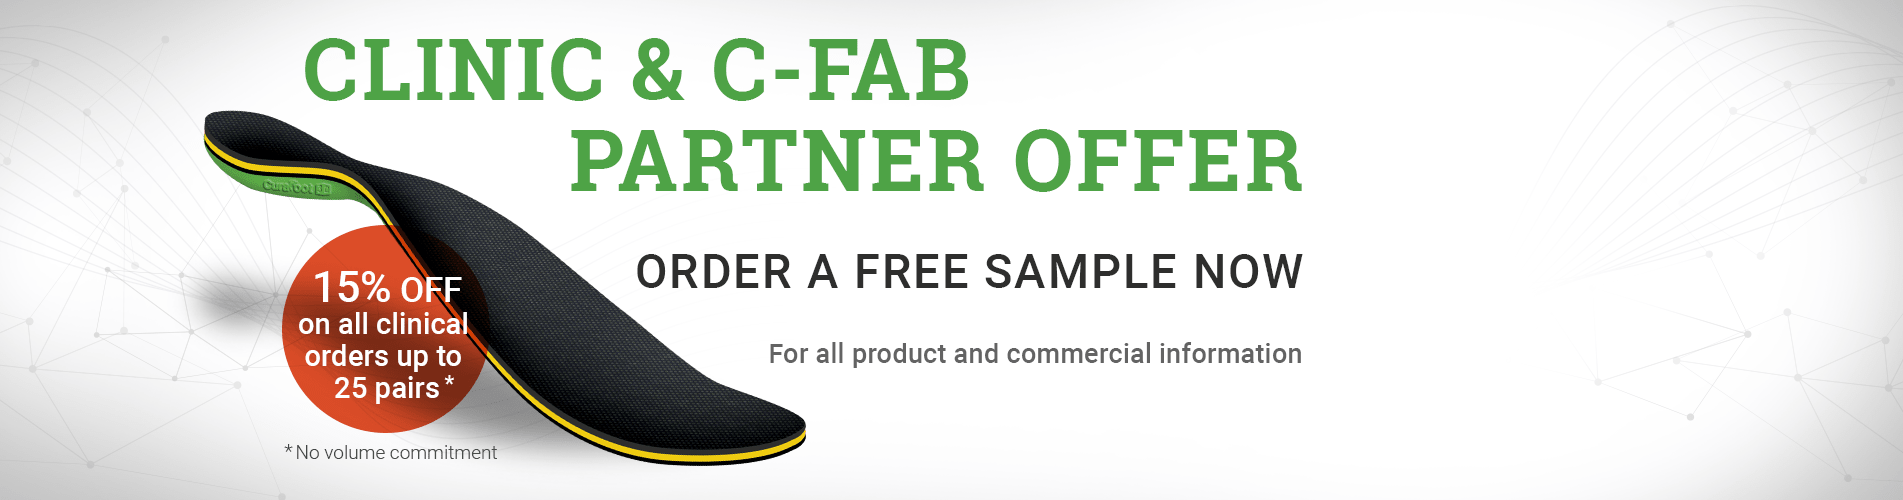 Clinic and C-Fab partner offer